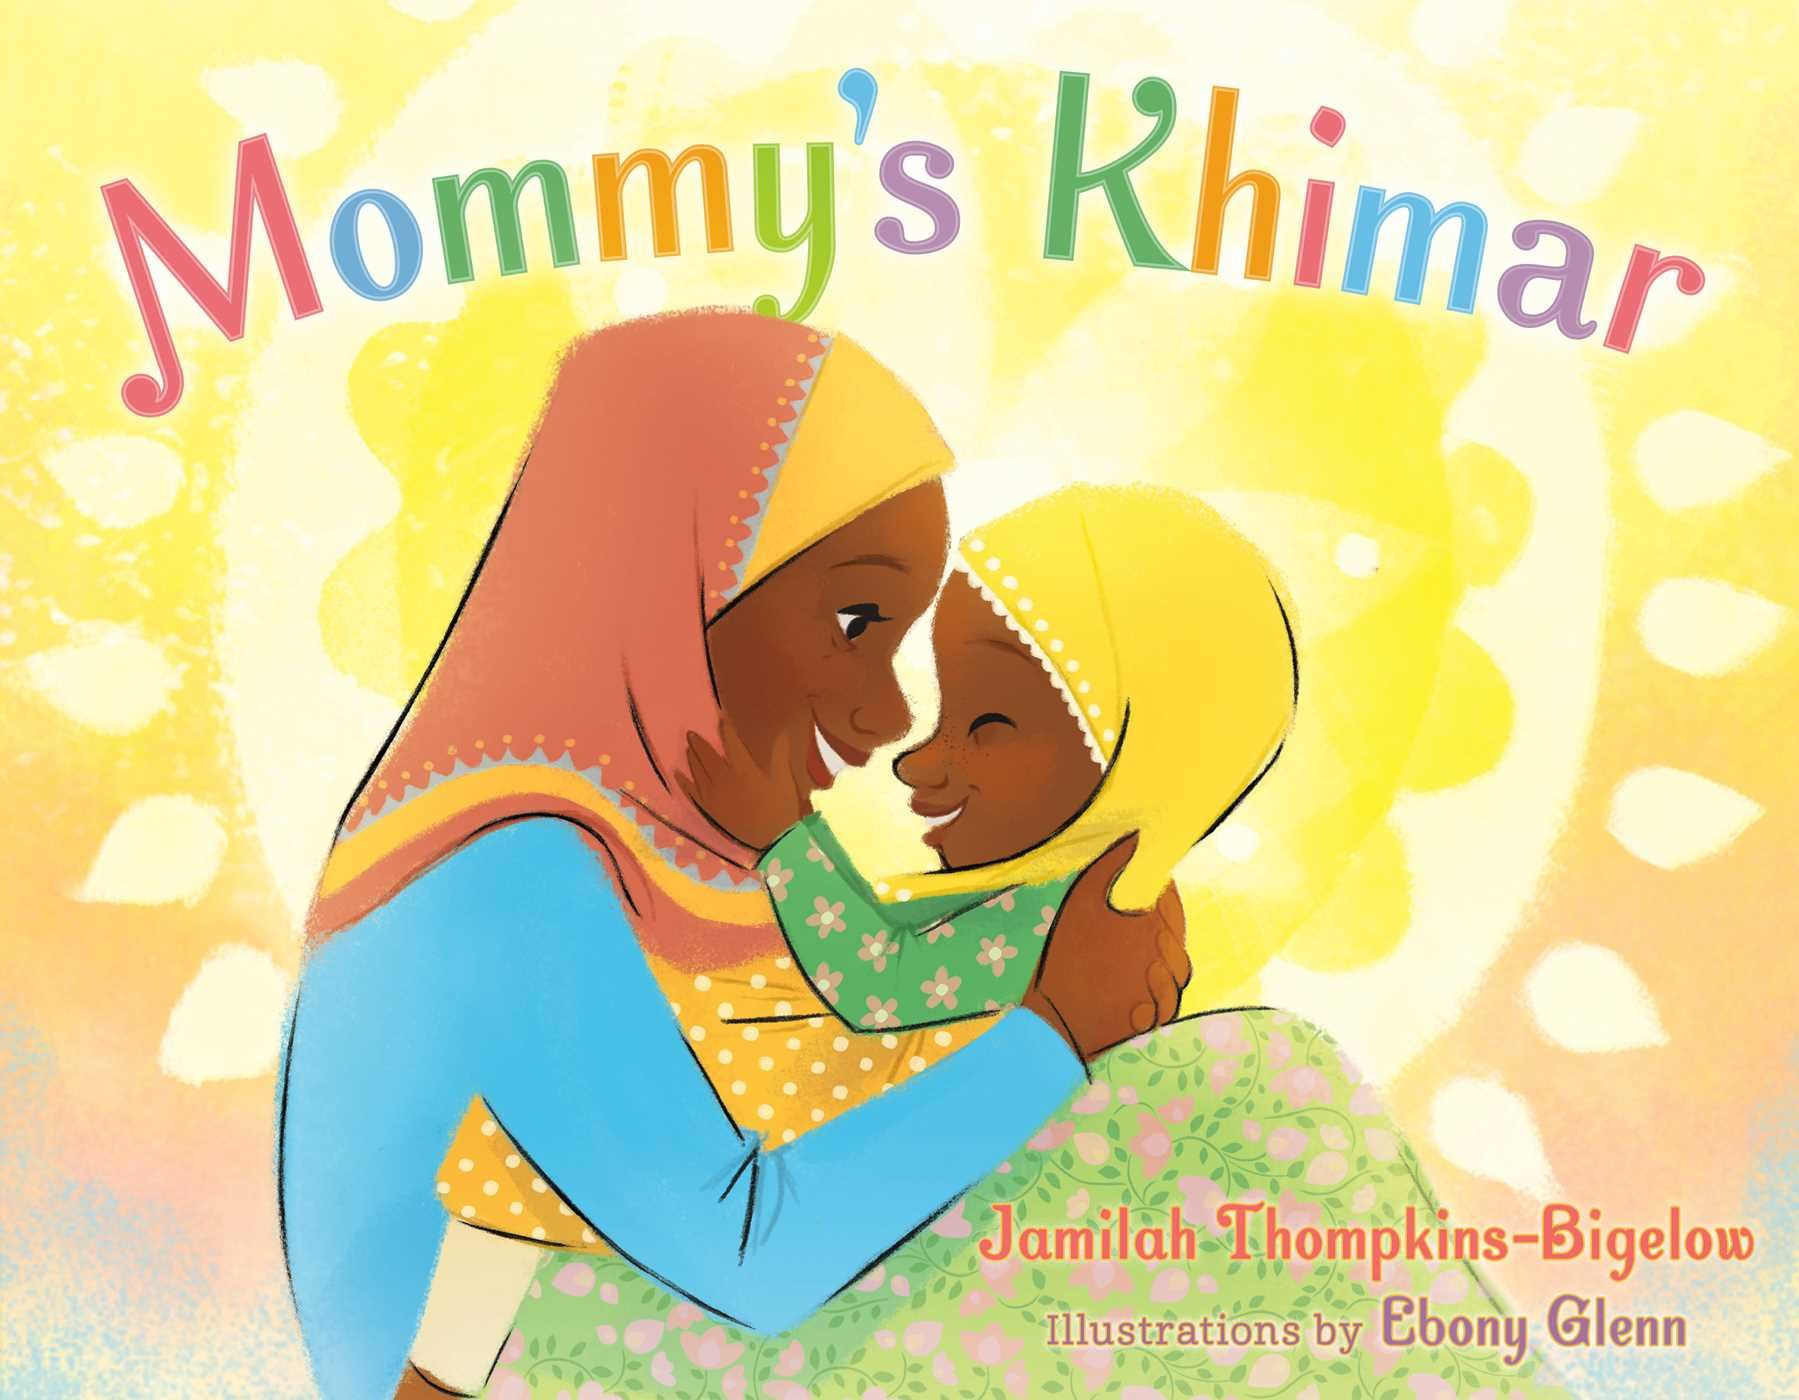 Fantastic children's books about Islam: Mommy's Khimar by Jamilah Thompkins-Bigelow